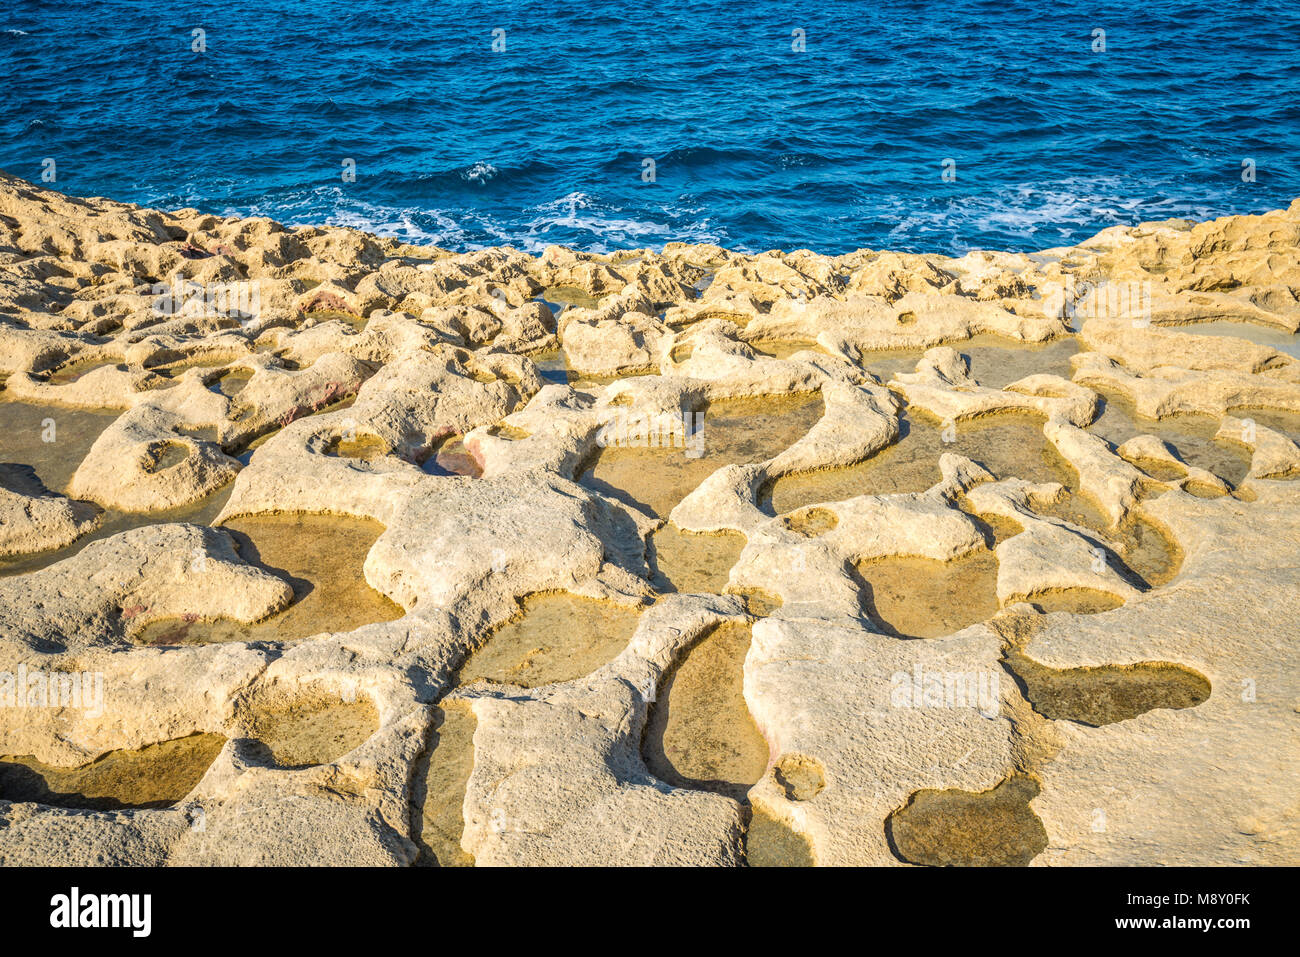 Salt evaporation ponds on Gozo island, Malta - Stock Image